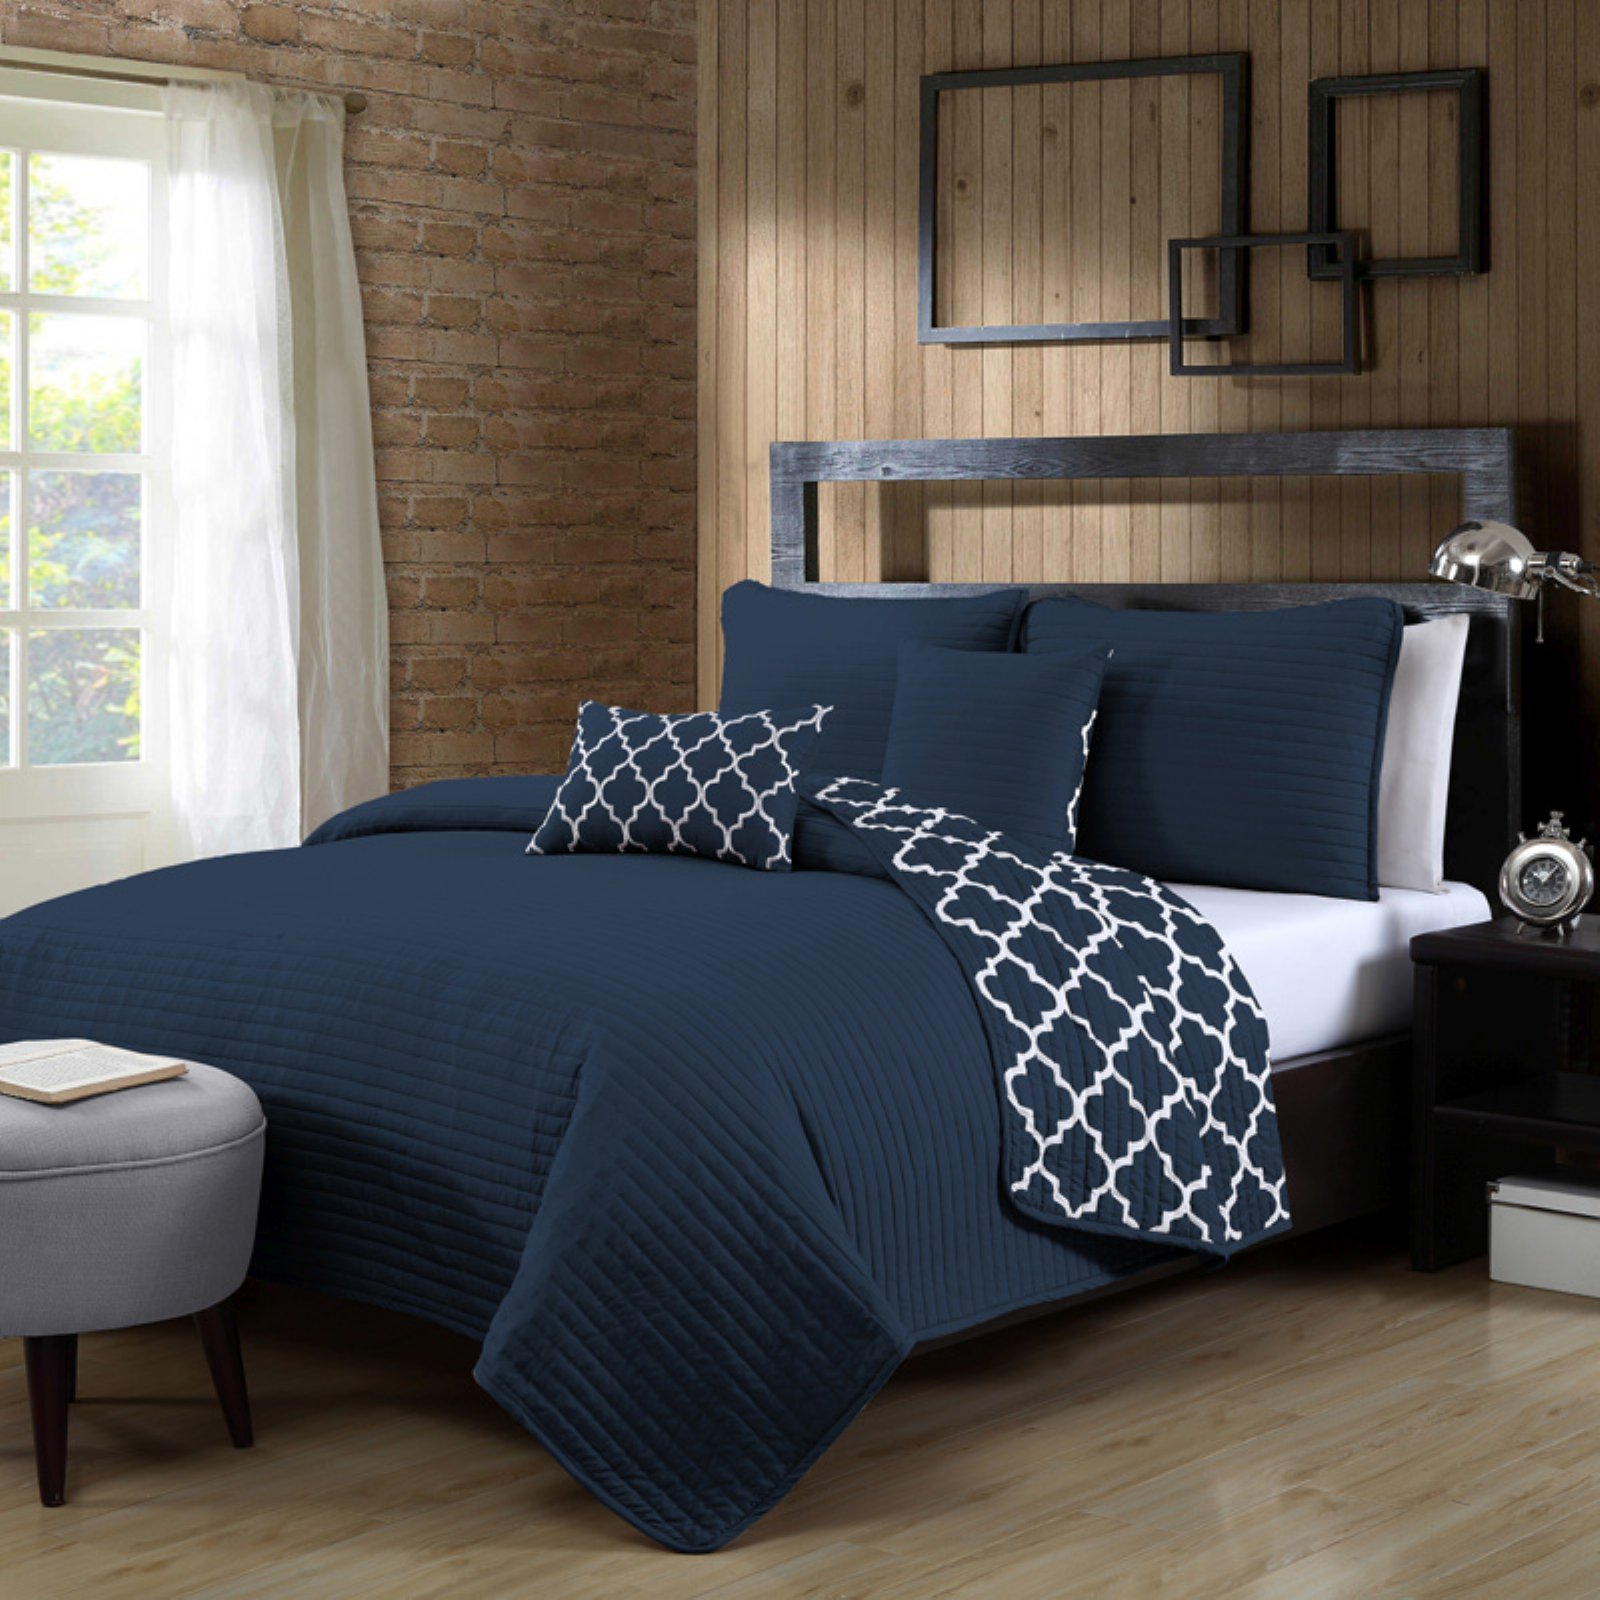 Griffin 5-Piece Quilt Set by Avondale Manor